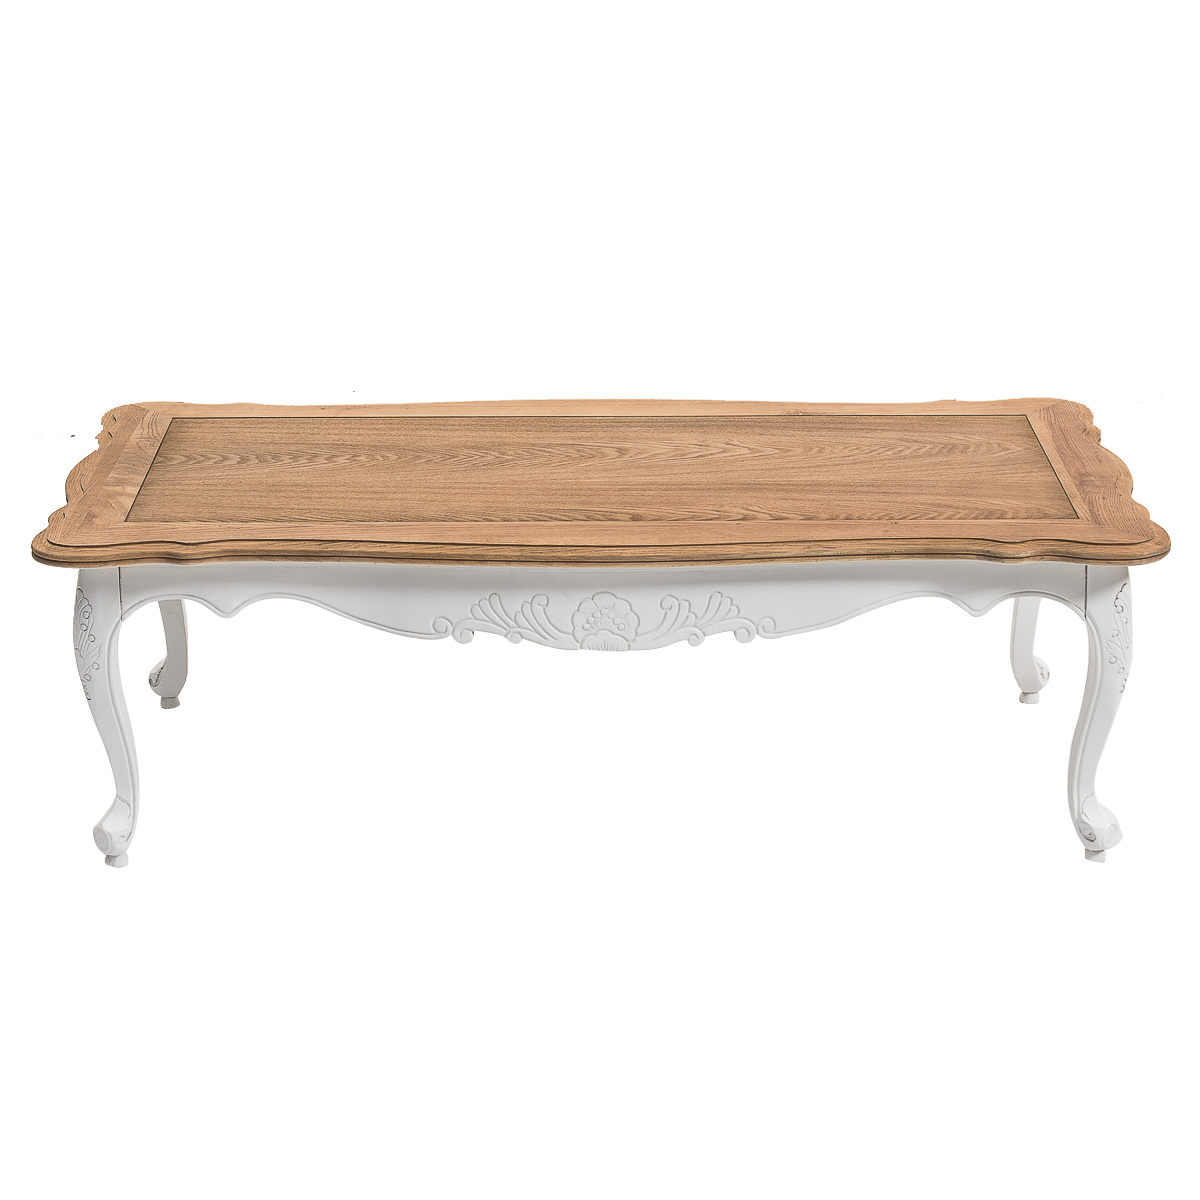 French provincial furniture chateau classic vintage style for Furniture classics ltd coffee table